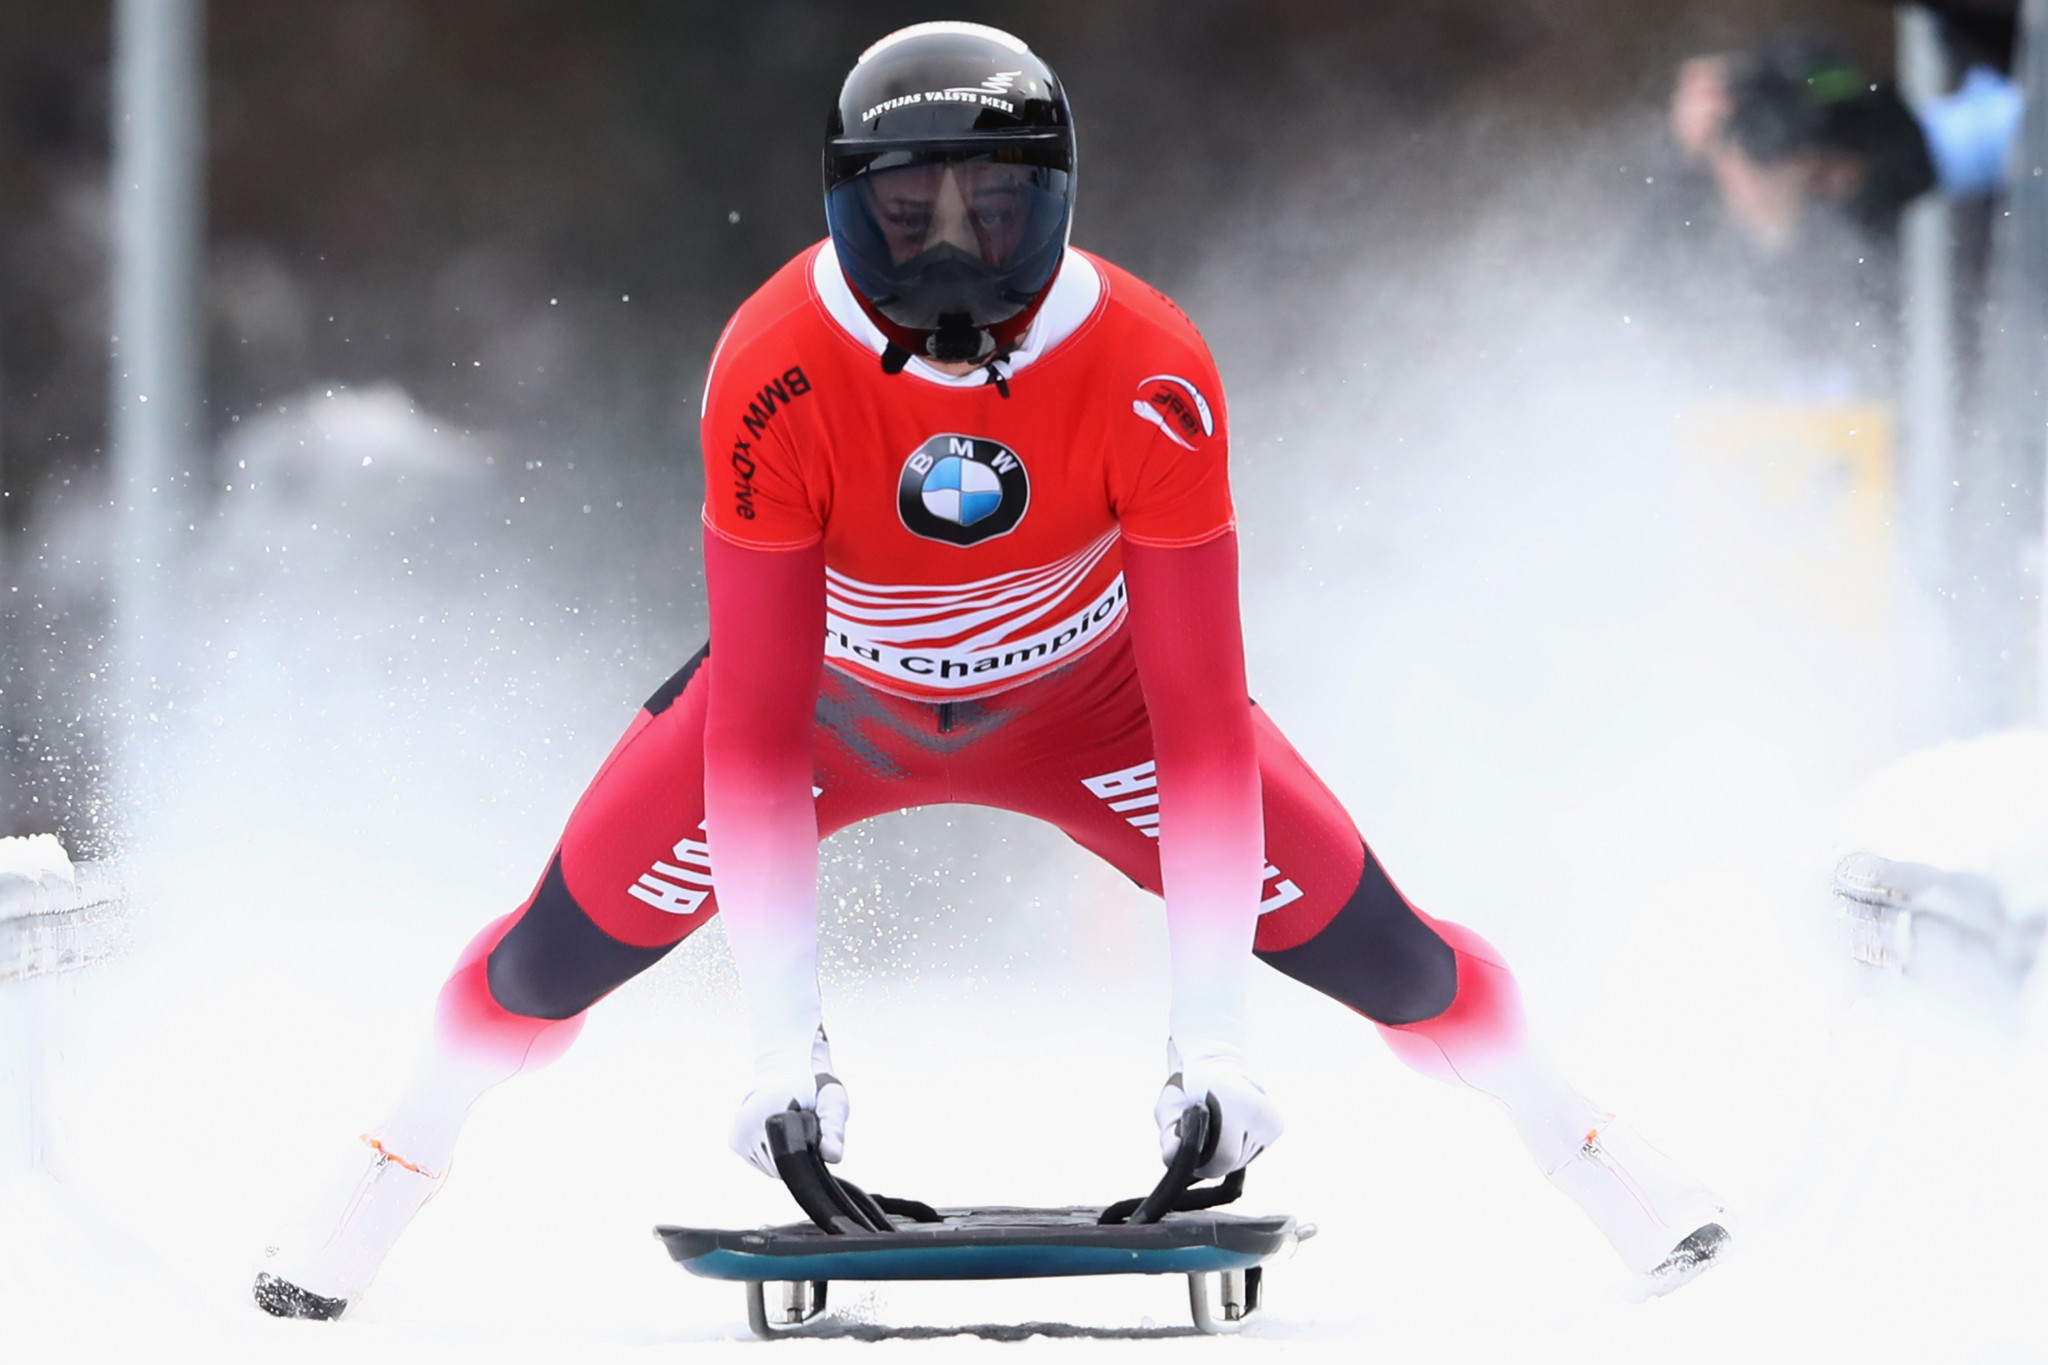 Martins Dukurs is in line to be upgraded to the men's skeleton gold medal from Sochi 2014 ©Getty Images